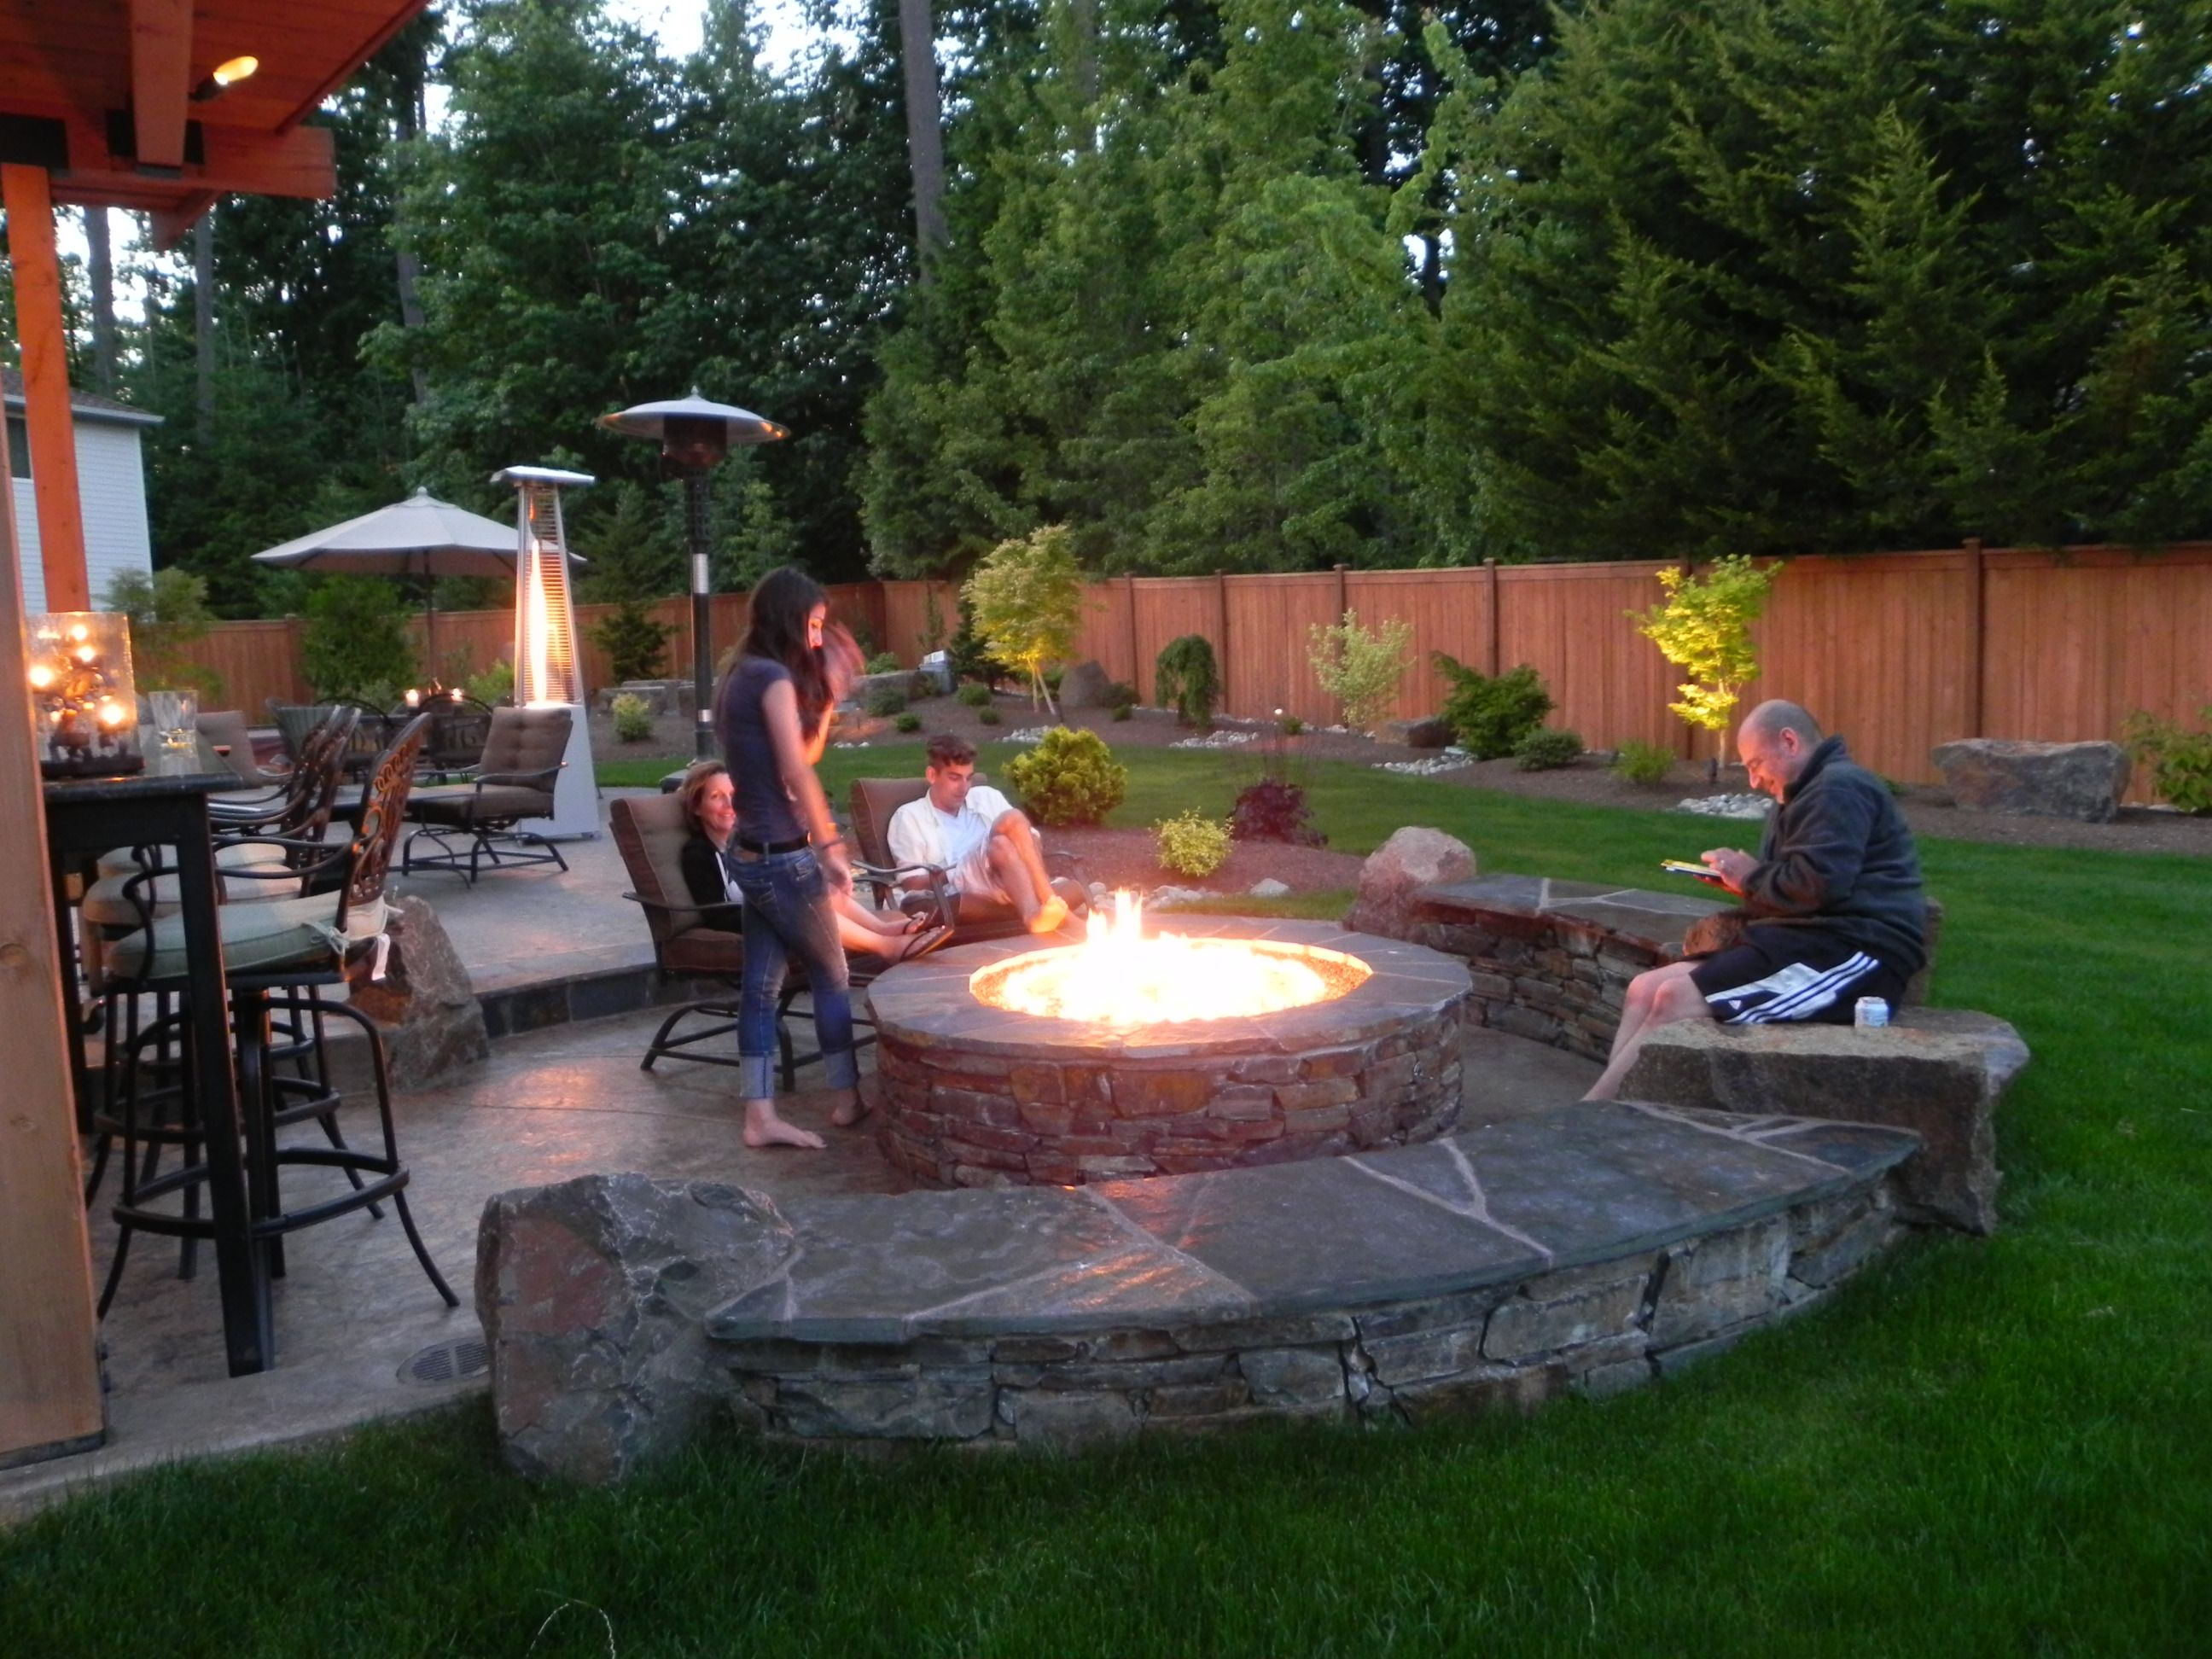 Fireplace Or Fire Pit Backyard Ideas Fire Pit Patio Backyard in 15 Smart Concepts of How to Make Fire Pit Ideas For Small Backyard